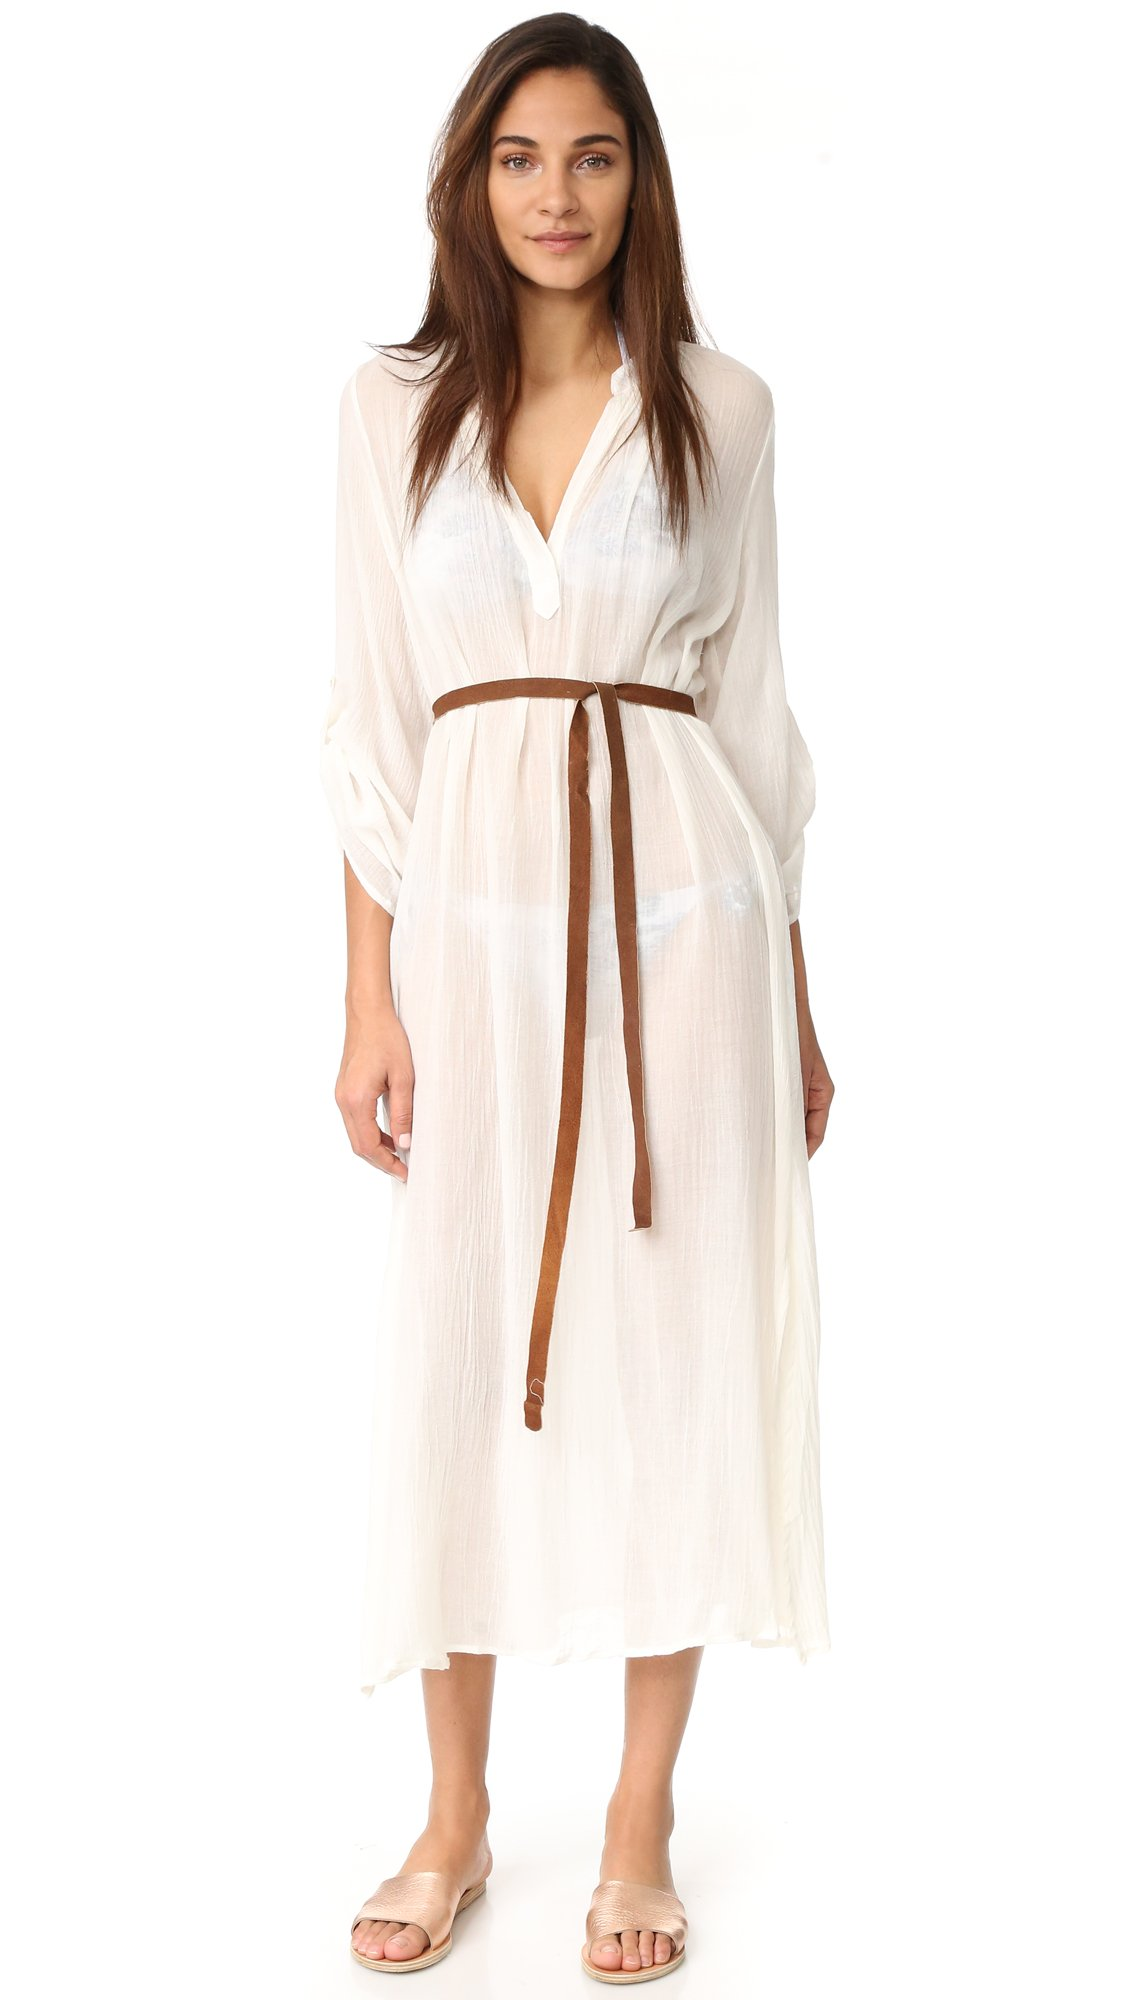 Eberjey Women's Summer Of Love Haven Cover Up Dress, Cloud, S/M by Eberjey (Image #1)